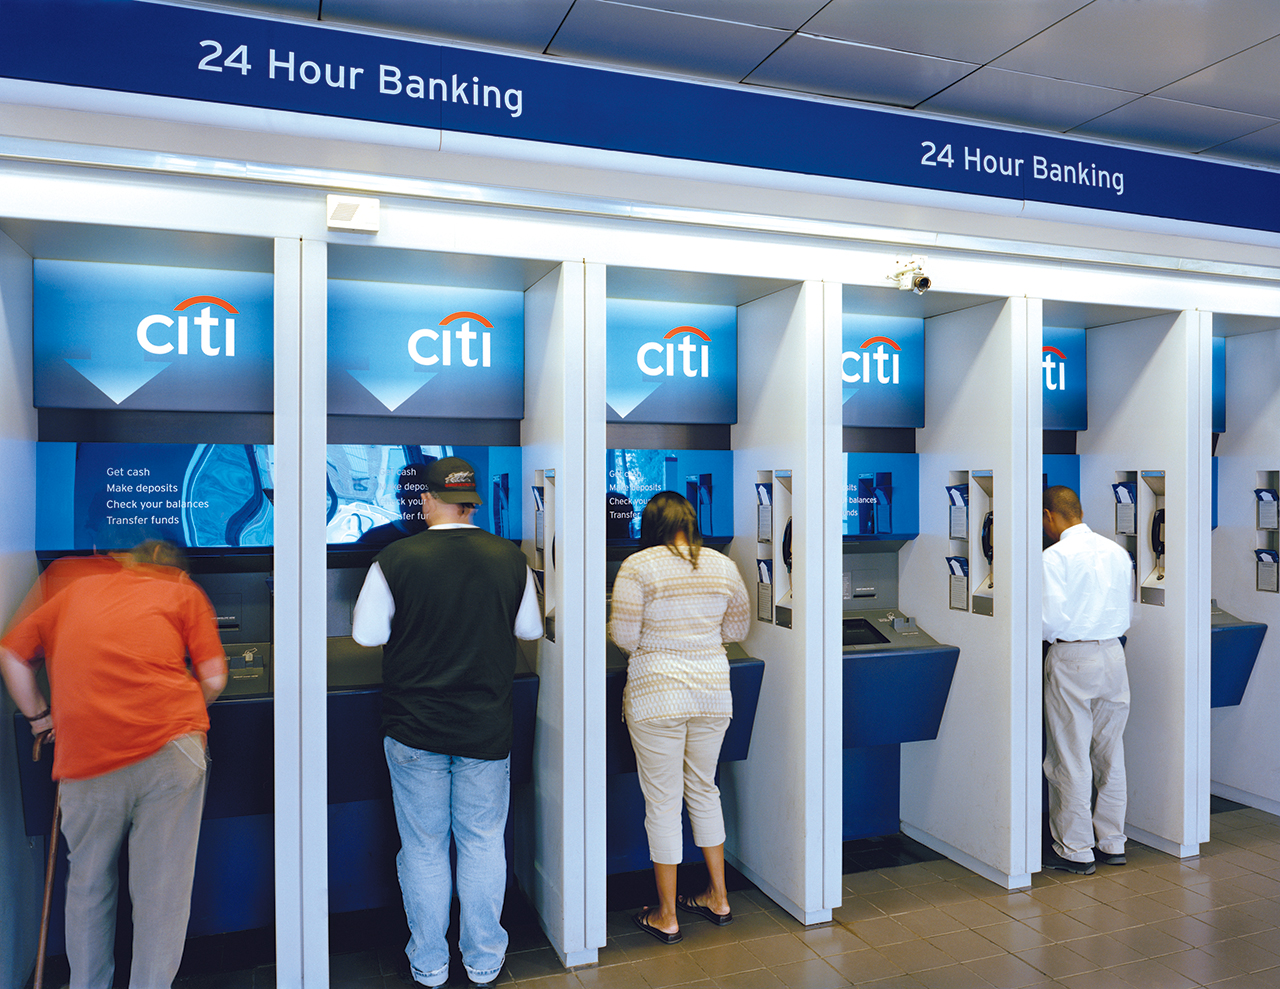 Citibank photo